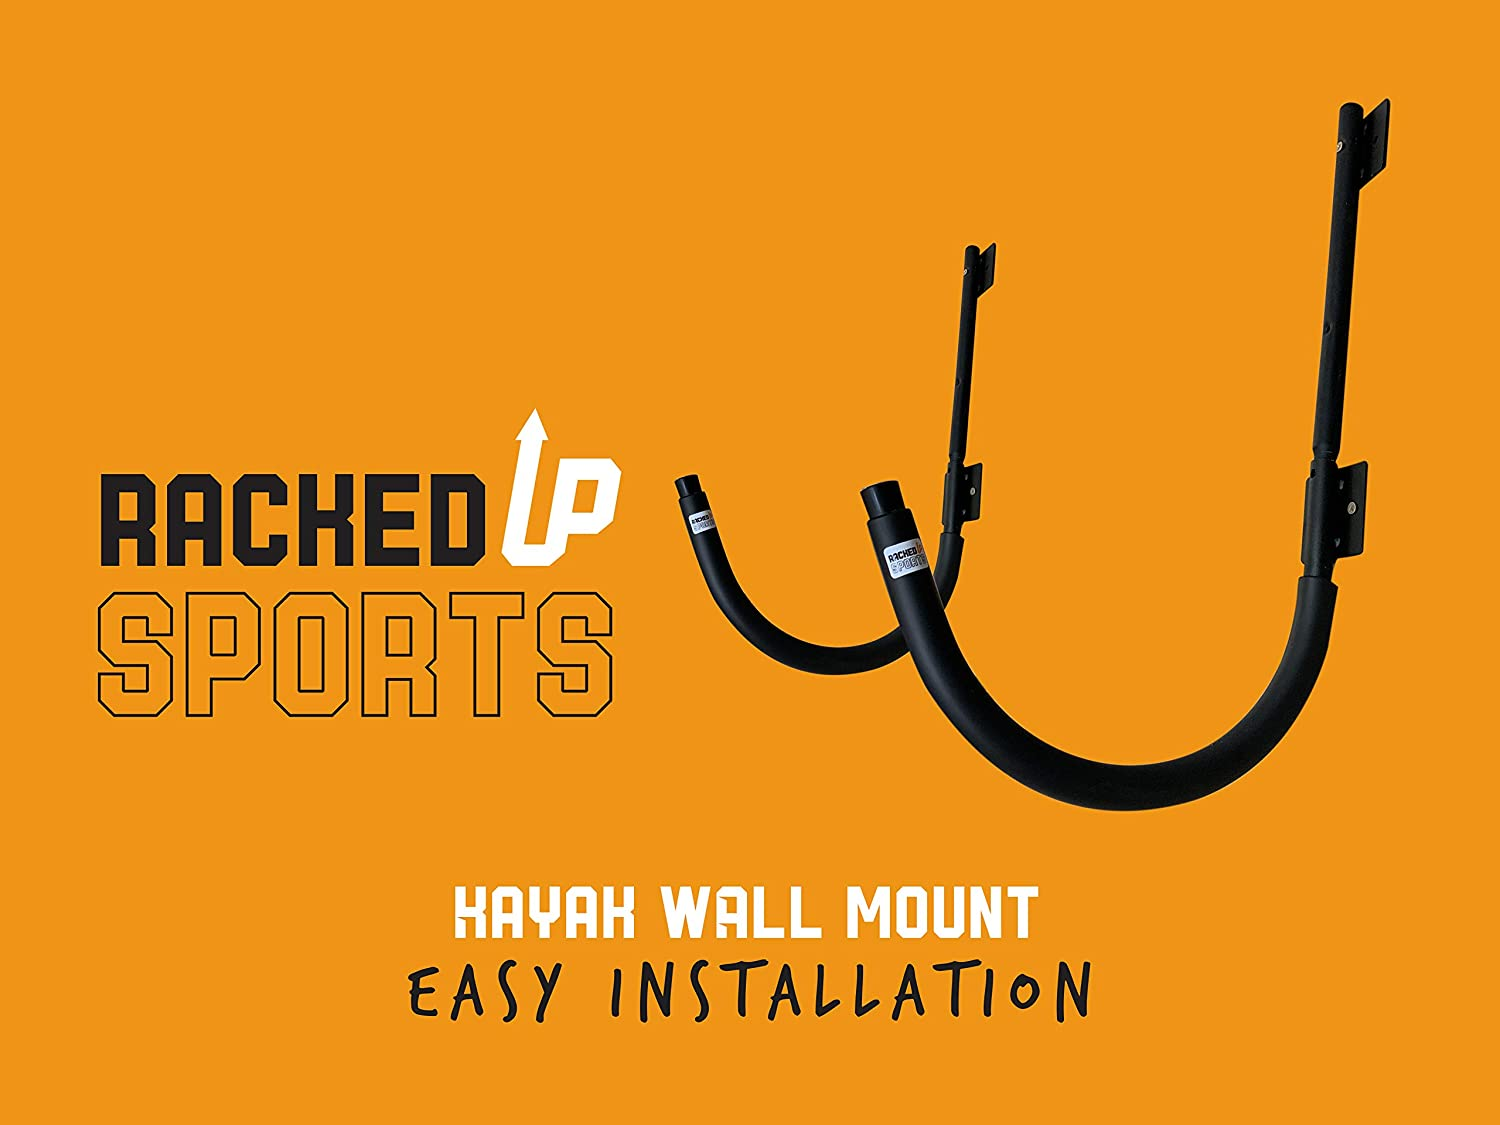 Heavy Duty Wall Mount Hanger Rack for Kayaks Paddle Boards Kayak Wall Hangers Craddle Hooks Racked Up Sports 300lb Capacity